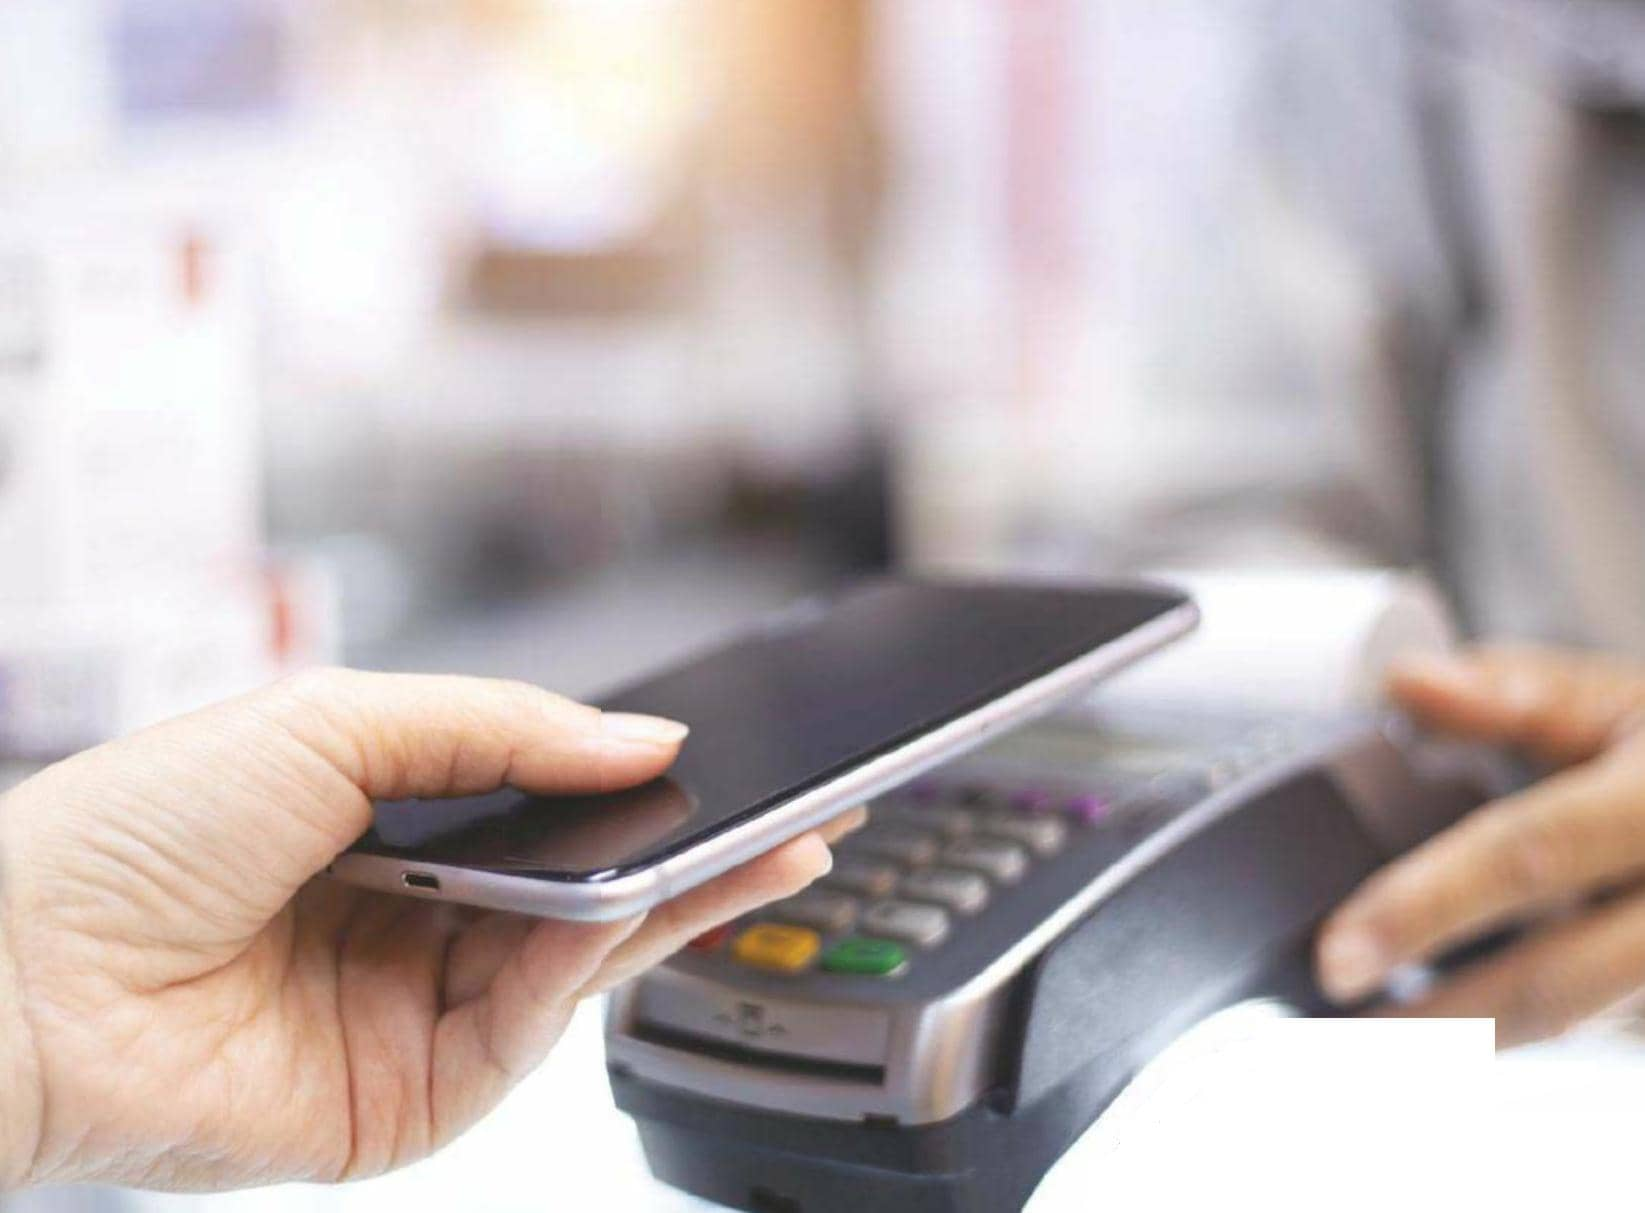 Are we headed to a cashless society?